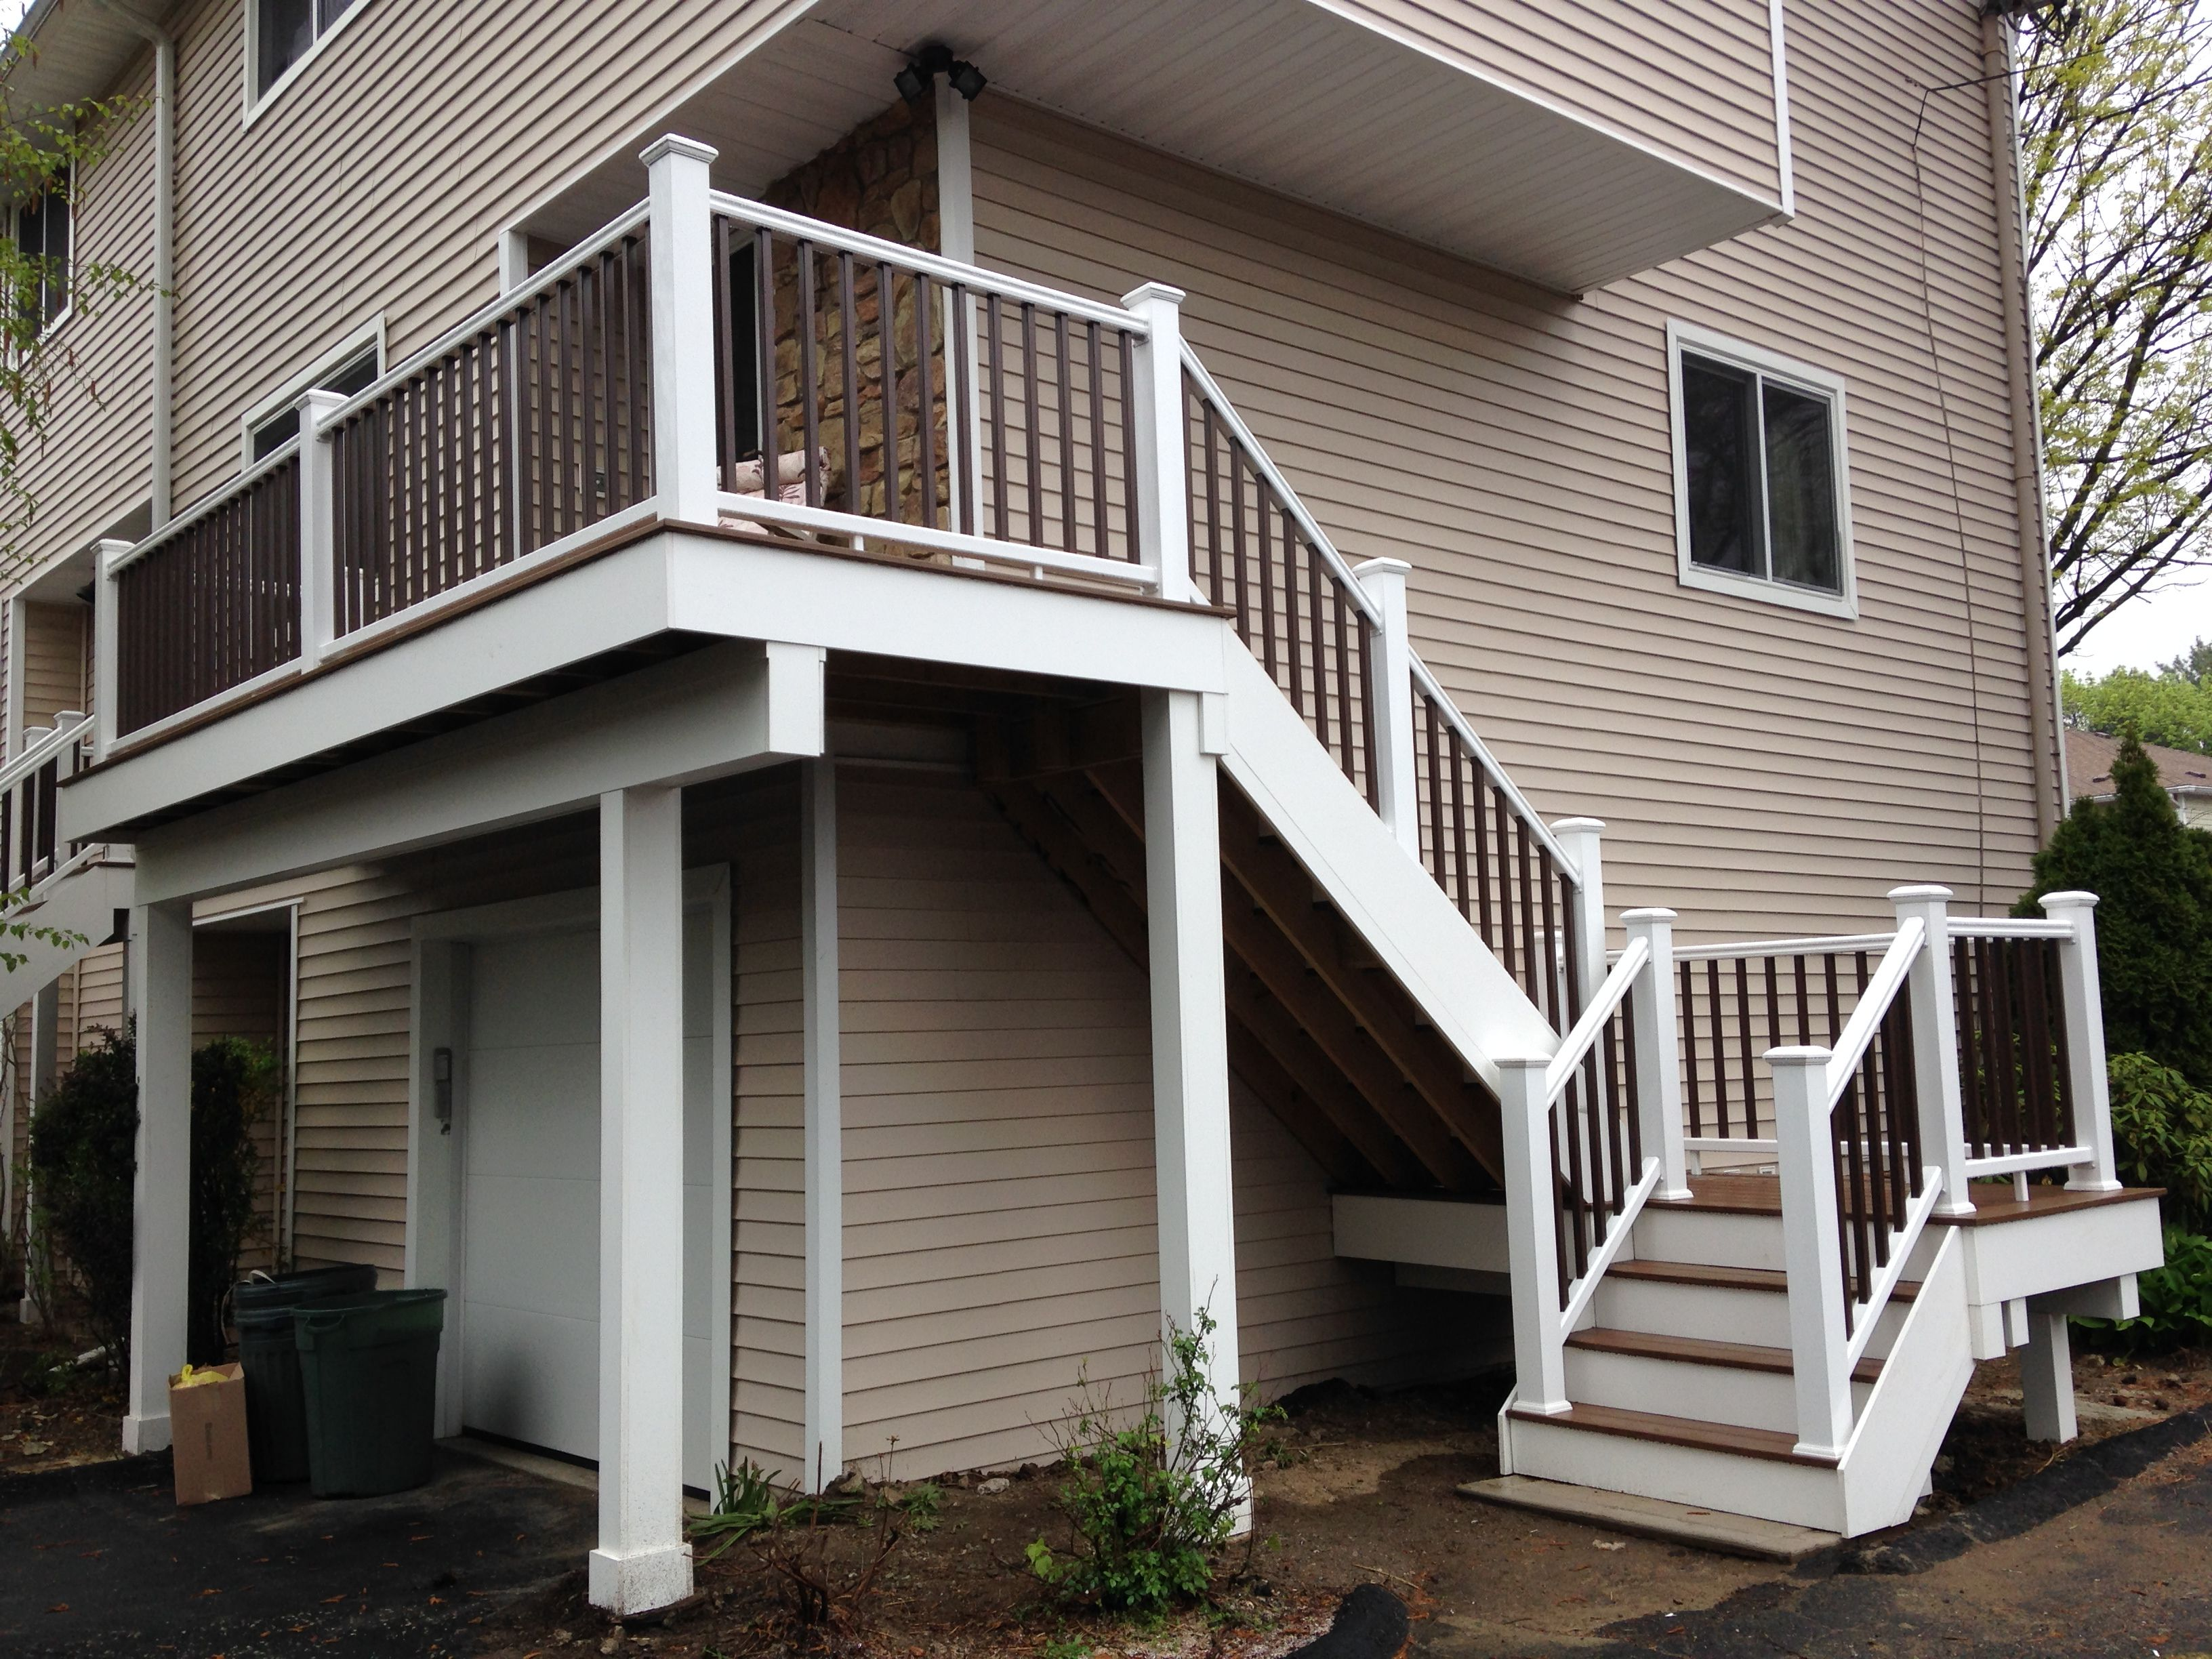 Stairs, landing, railings & second story deck replaced for